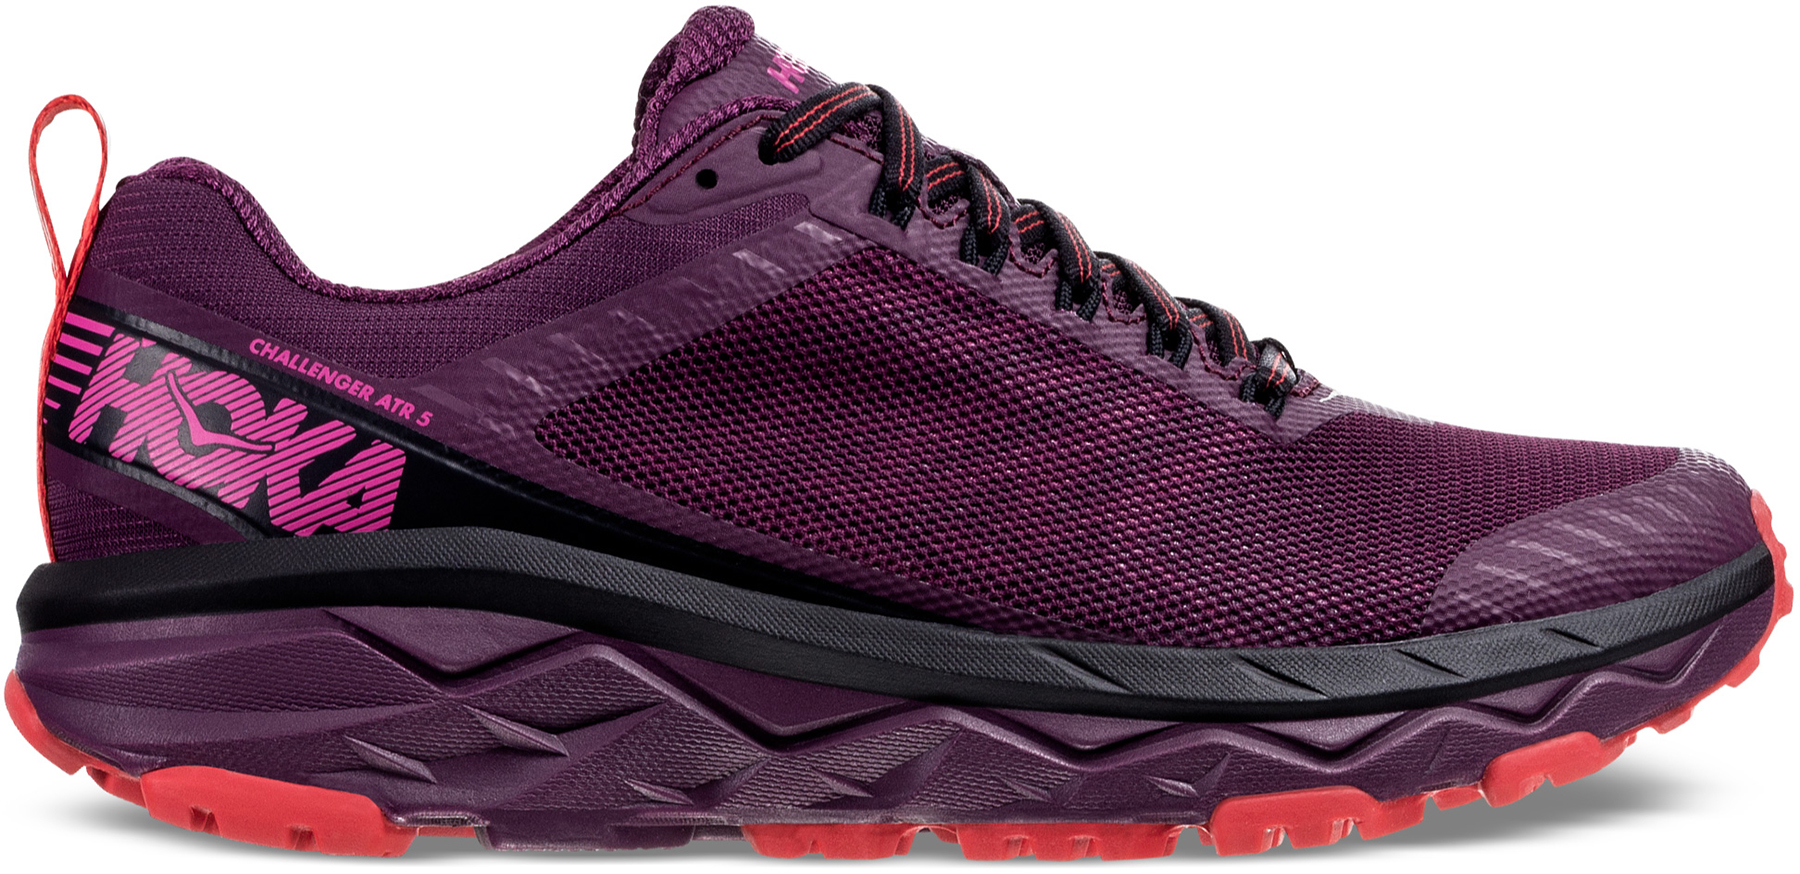 Hoka One One Challenger ATR 4 Women/'s Running Shoes Free Priority Shipping!